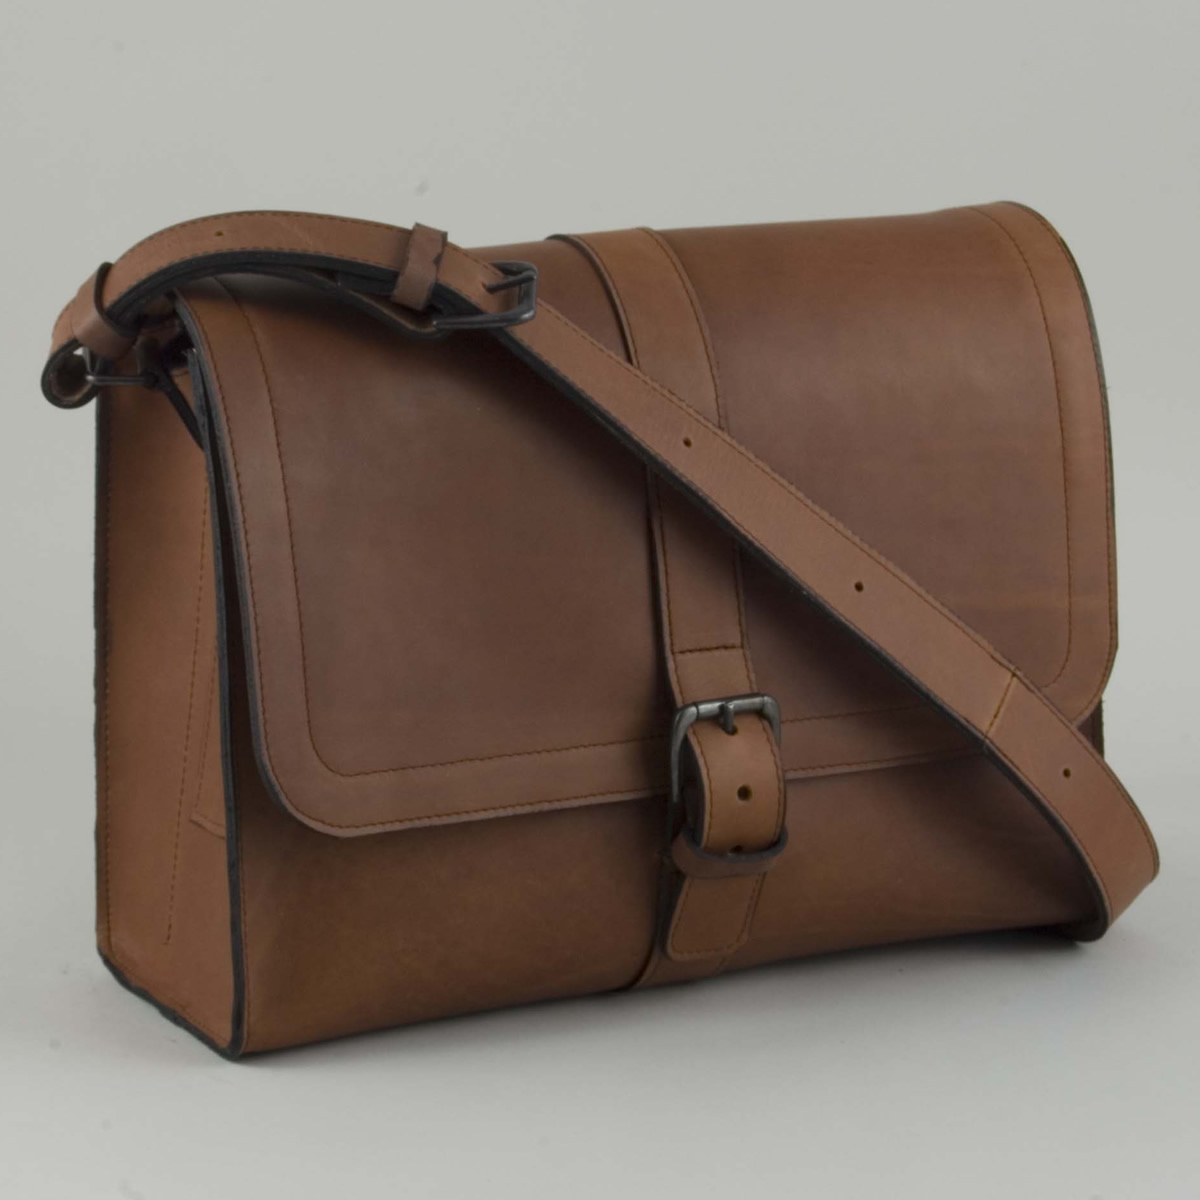 The Large Satchel